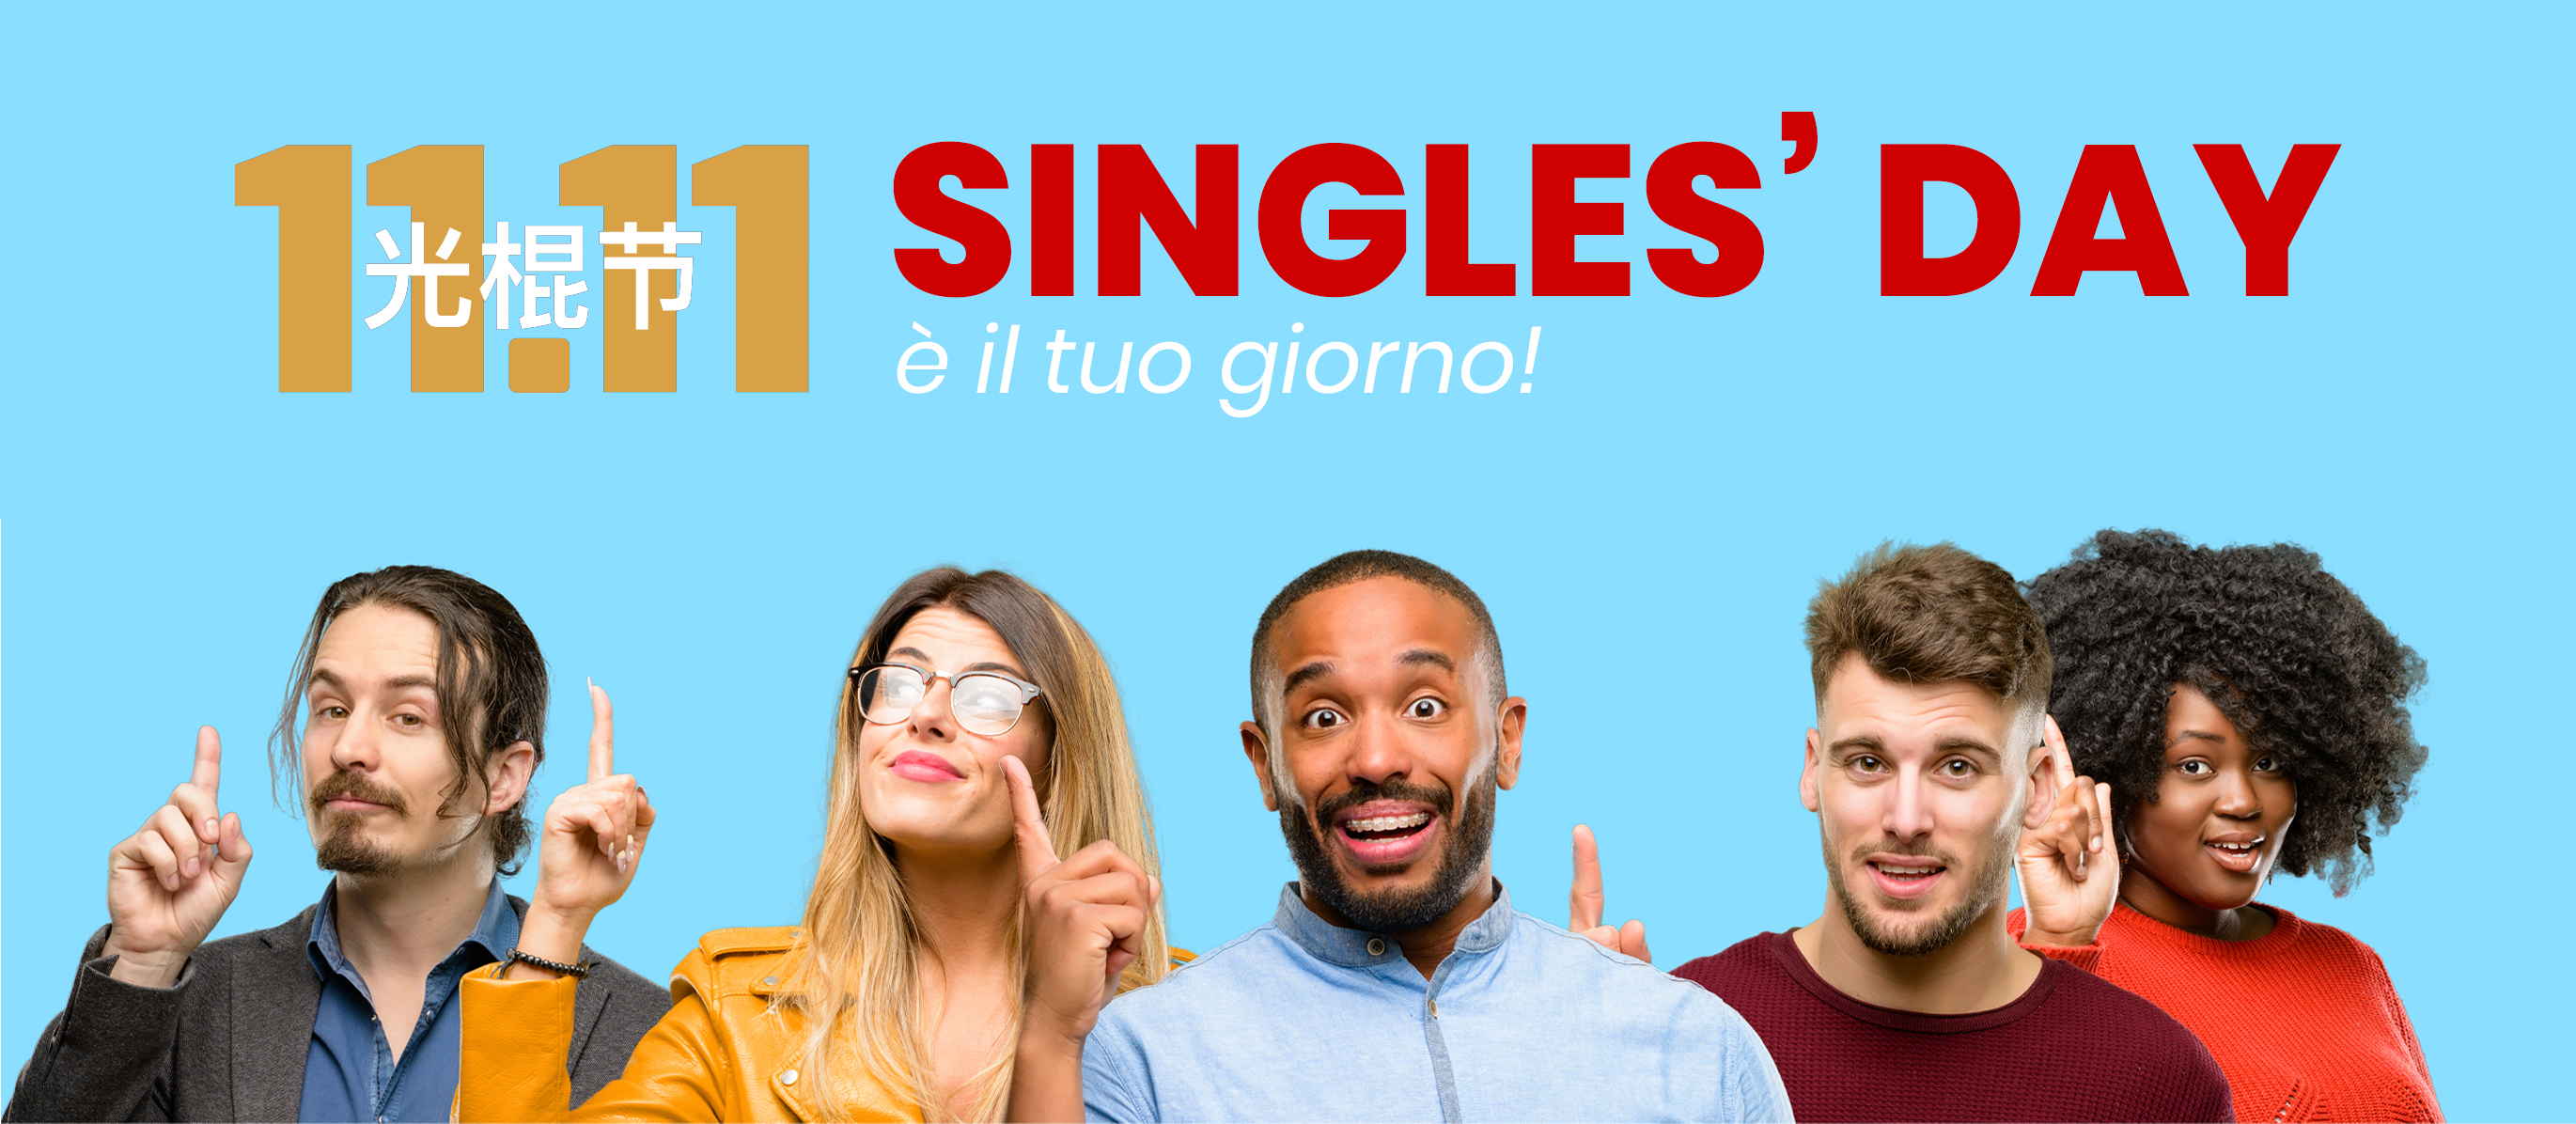 single's day 2021